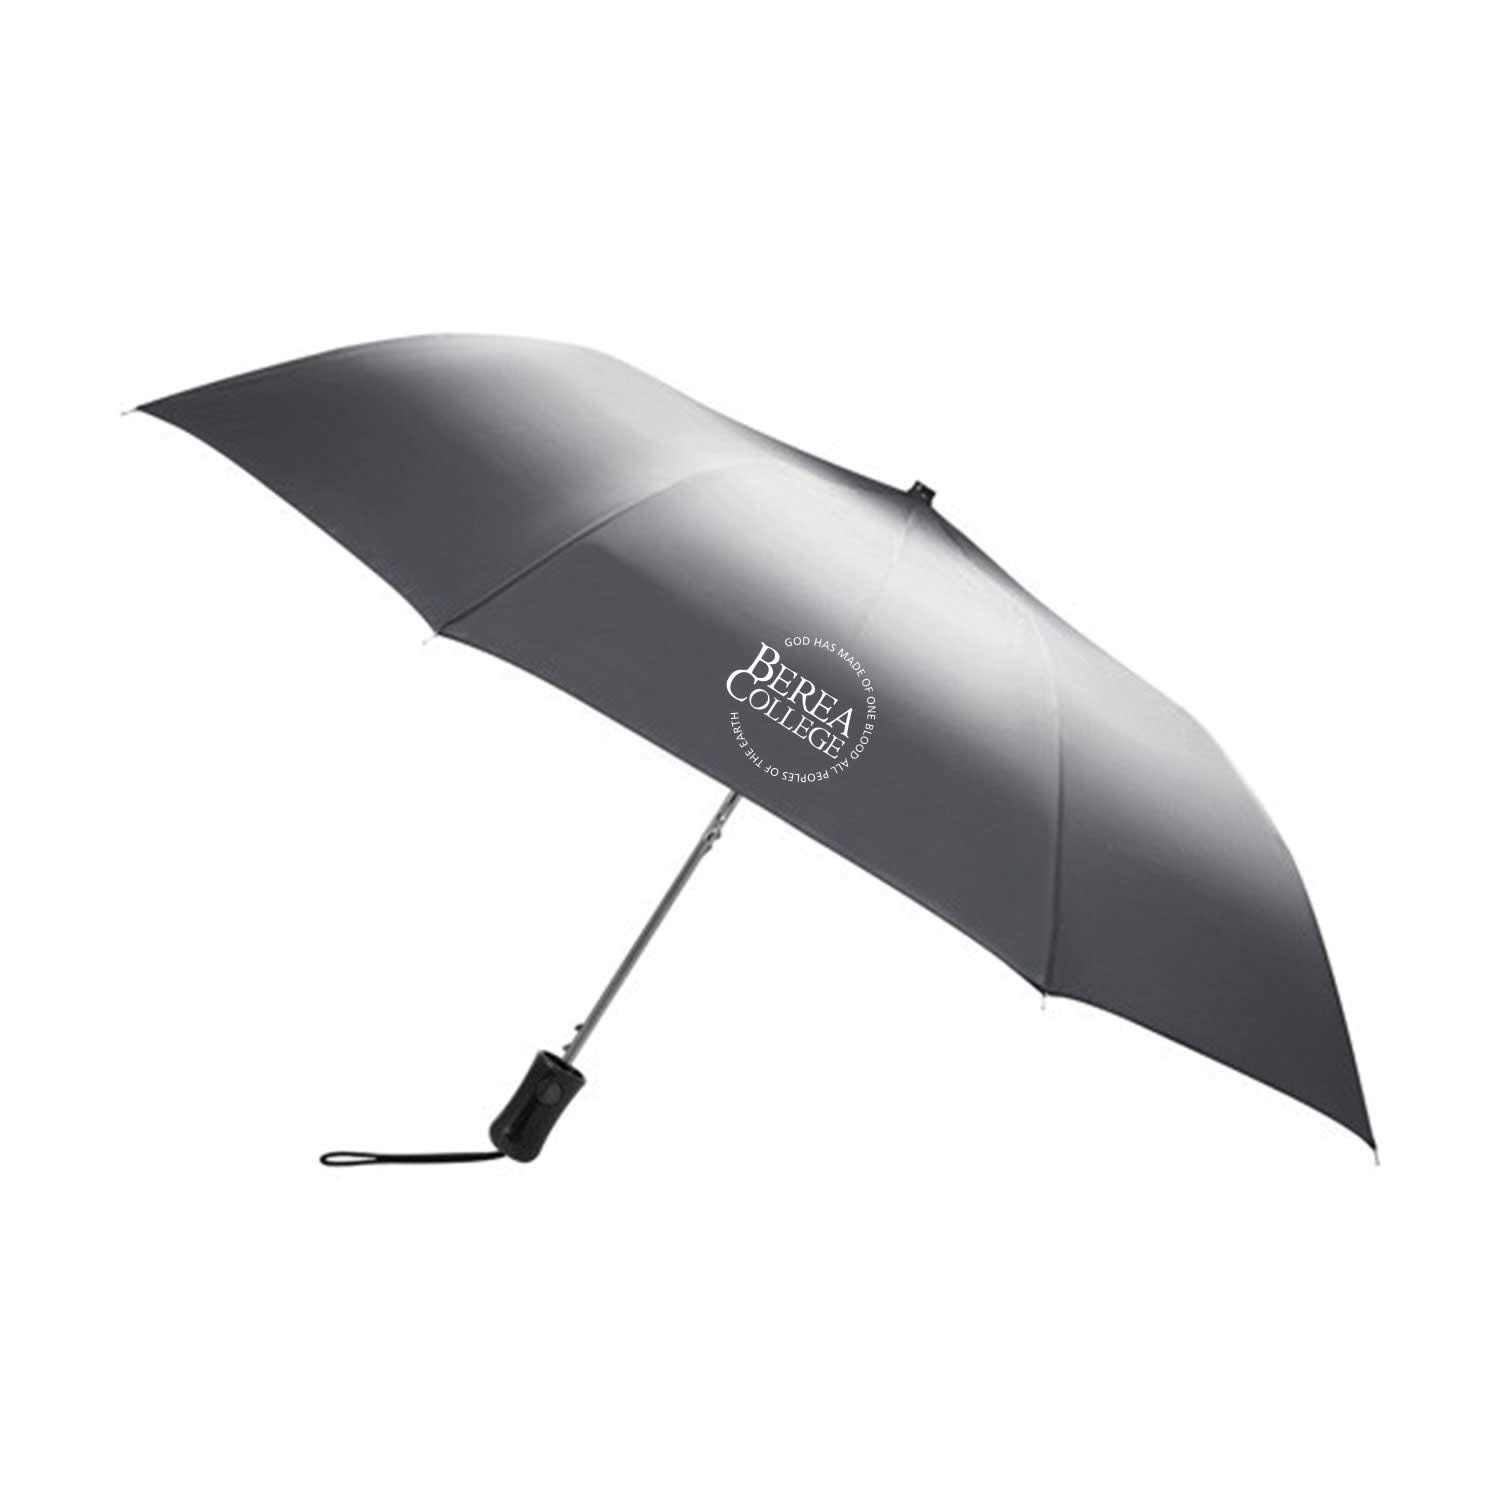 Berea College Umbrella-1